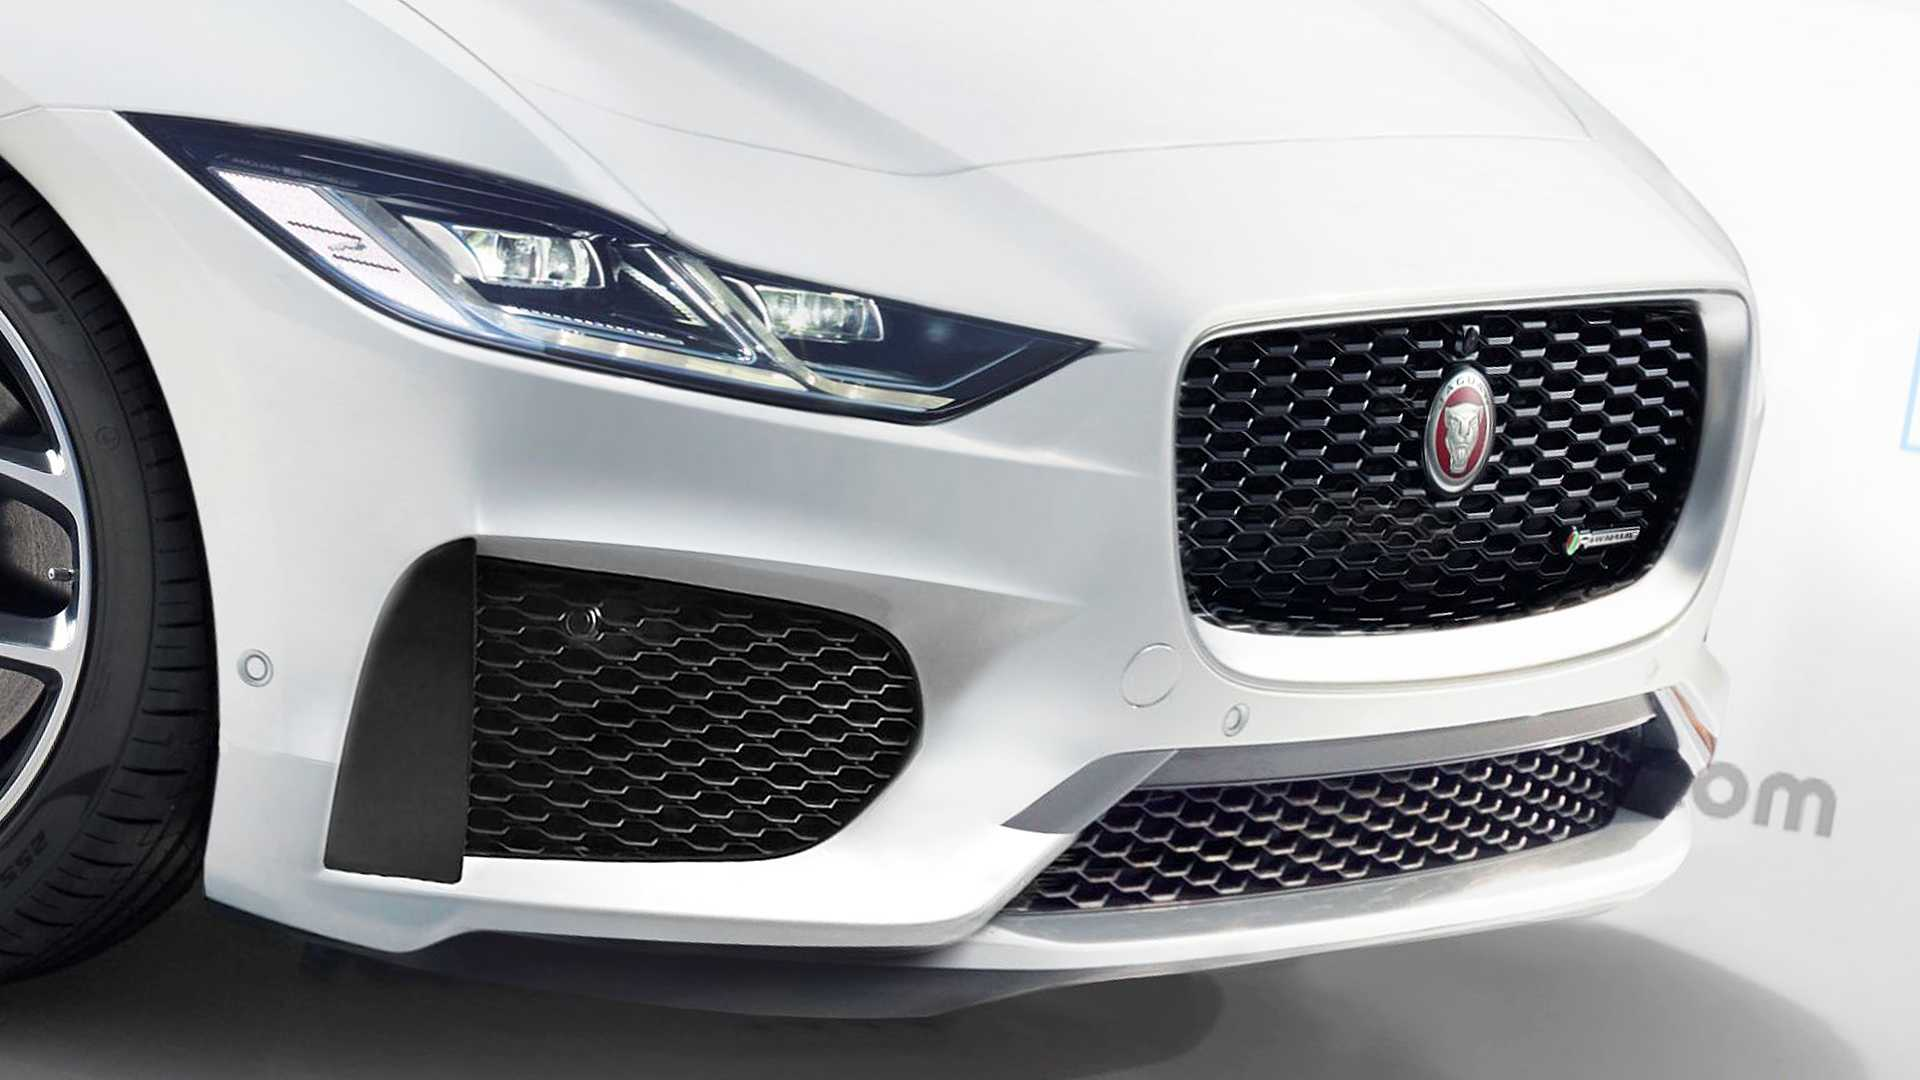 78 New 2020 Jaguar Xj Redesign Reviews for 2020 Jaguar Xj Redesign